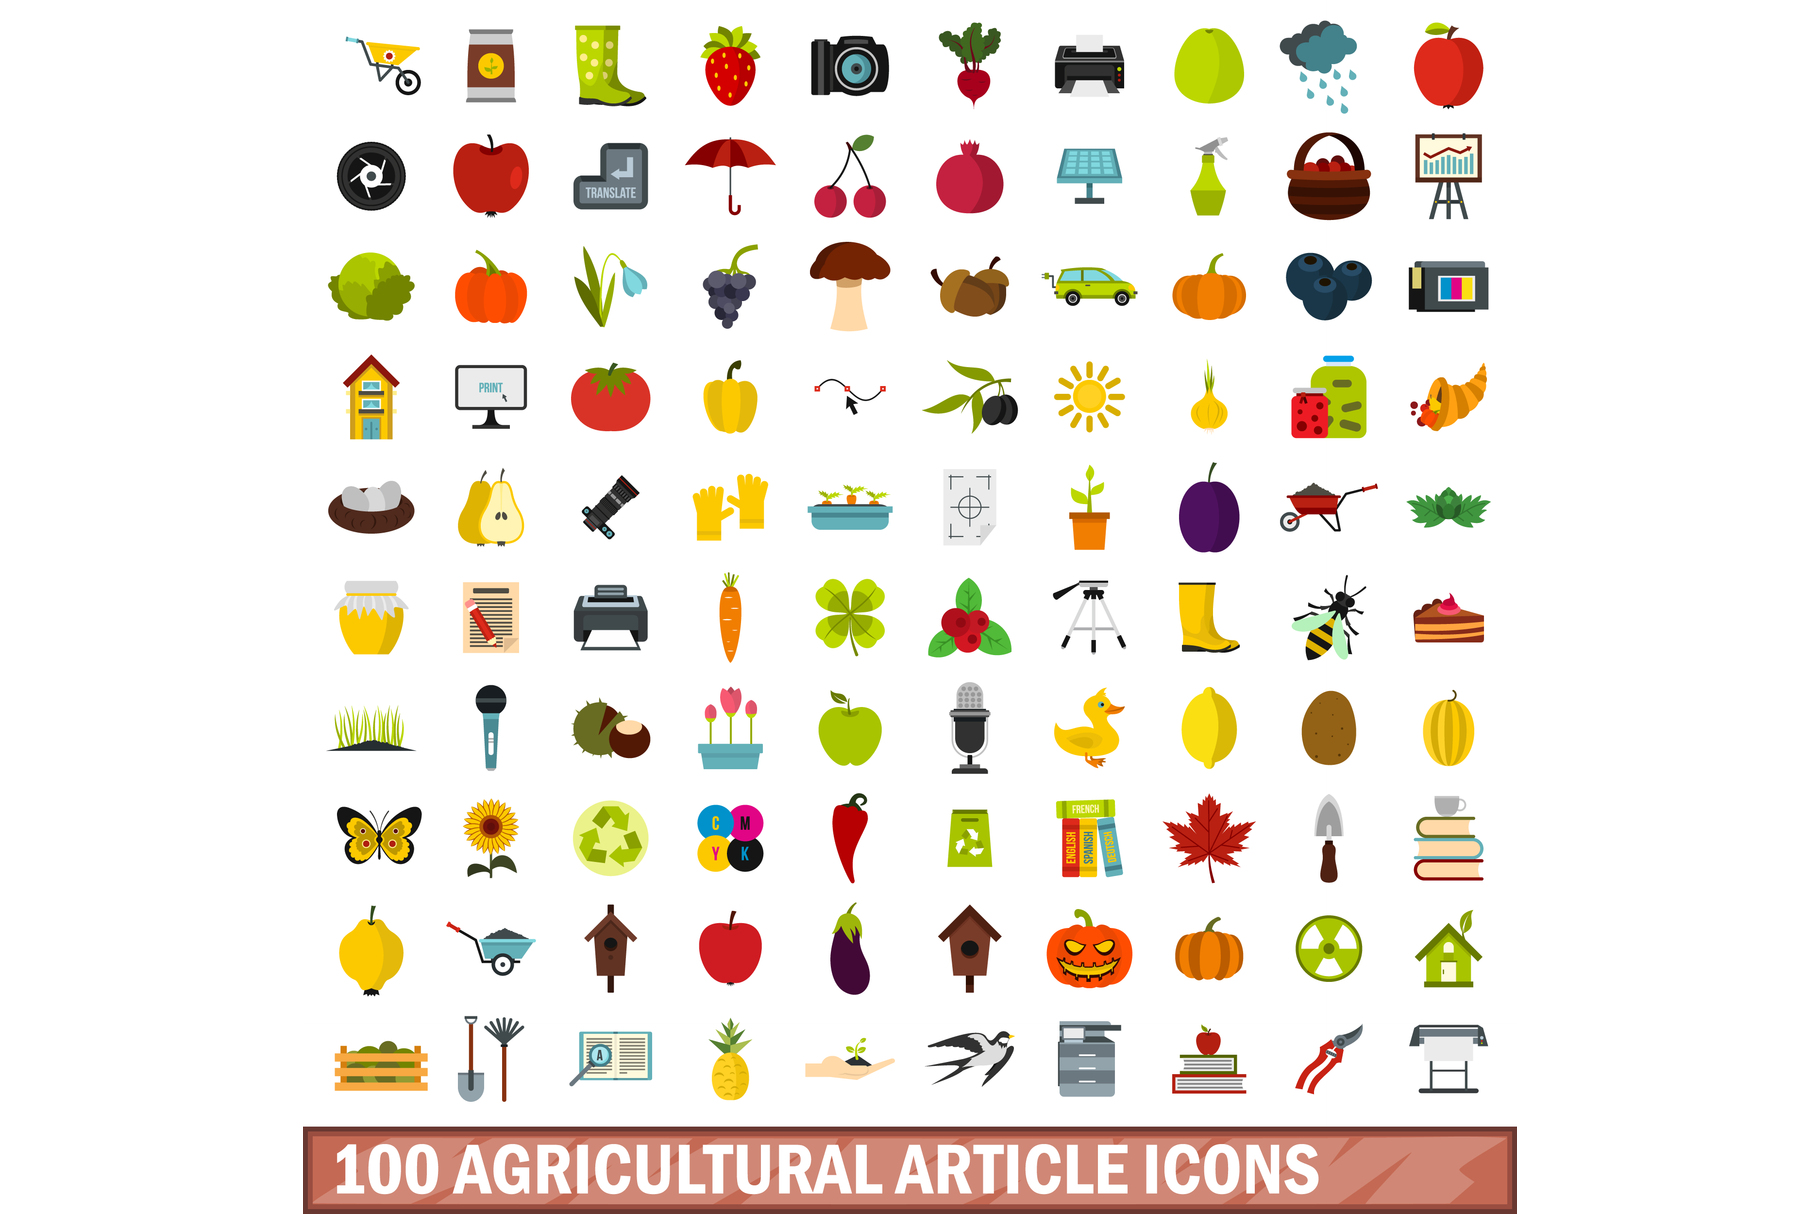 100 agricultural article icons set, flat style example image 1